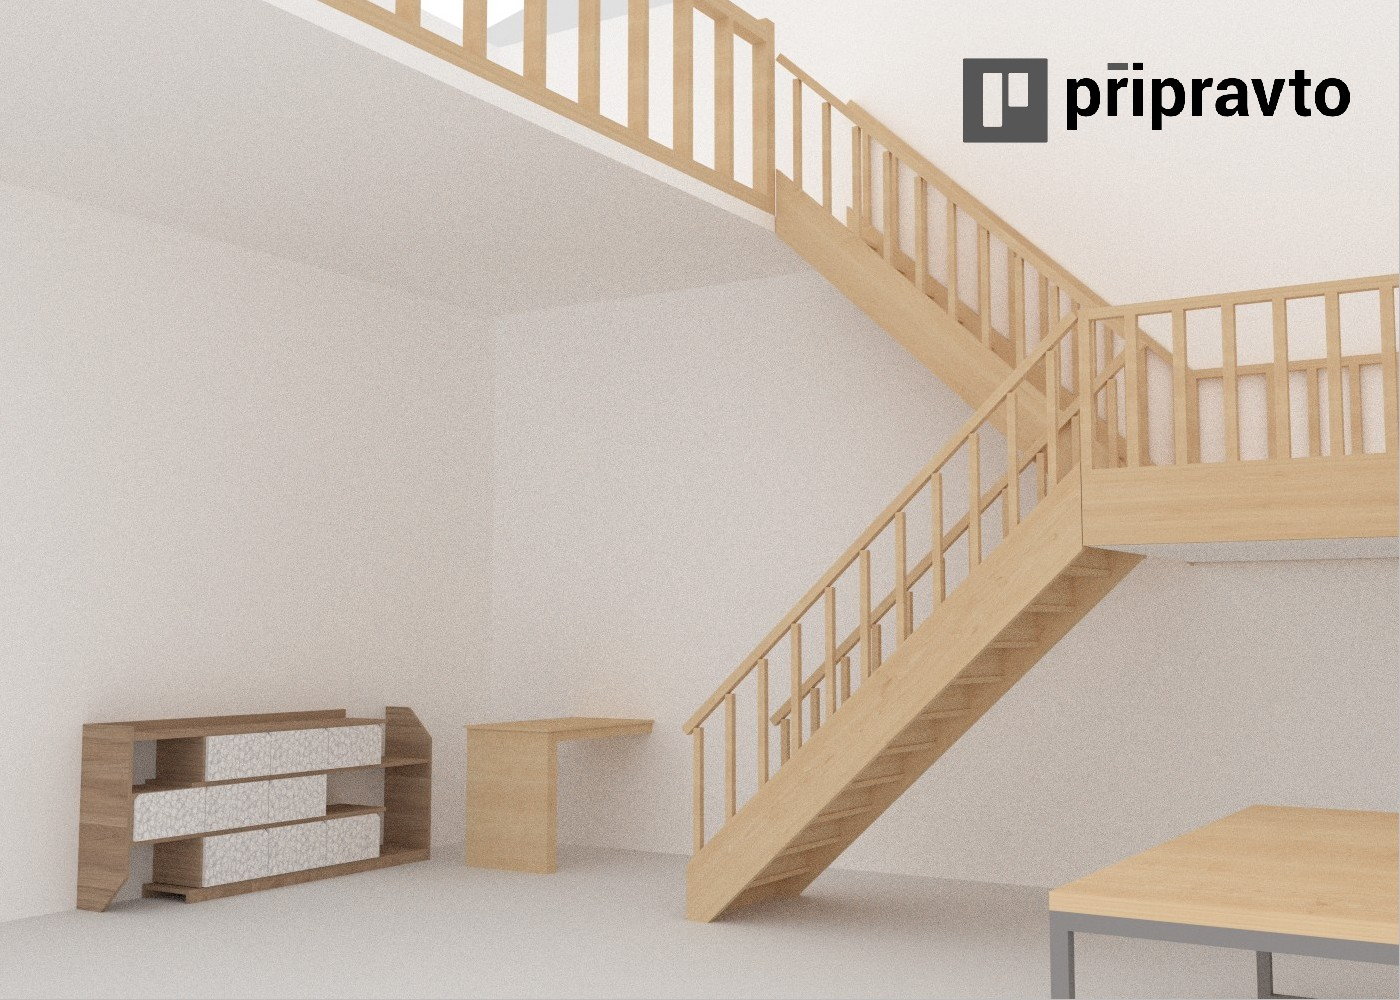 visualization design of interior with stairs